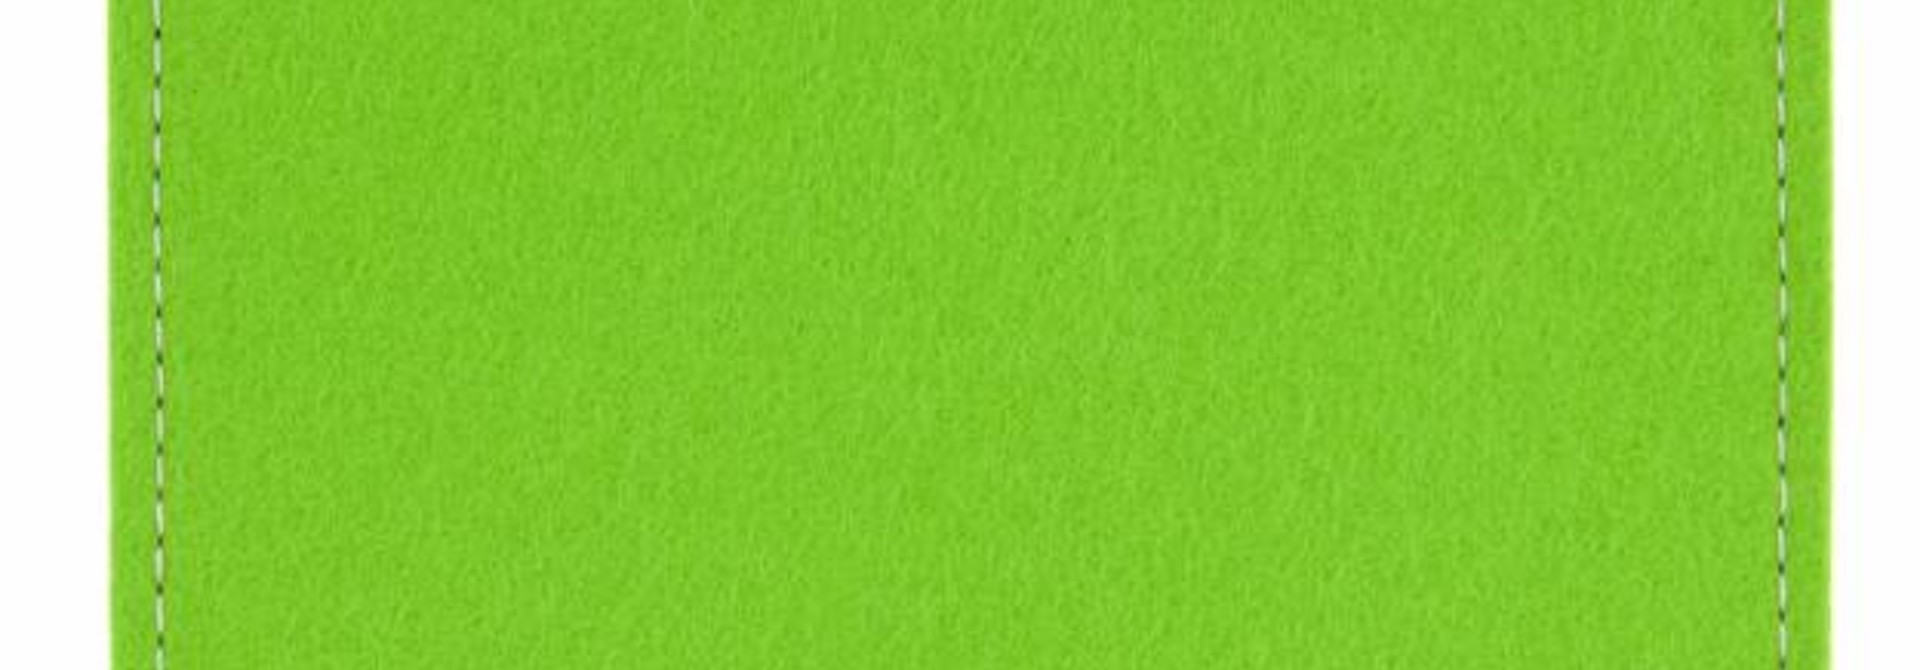 Surface Sleeve Bright-Green